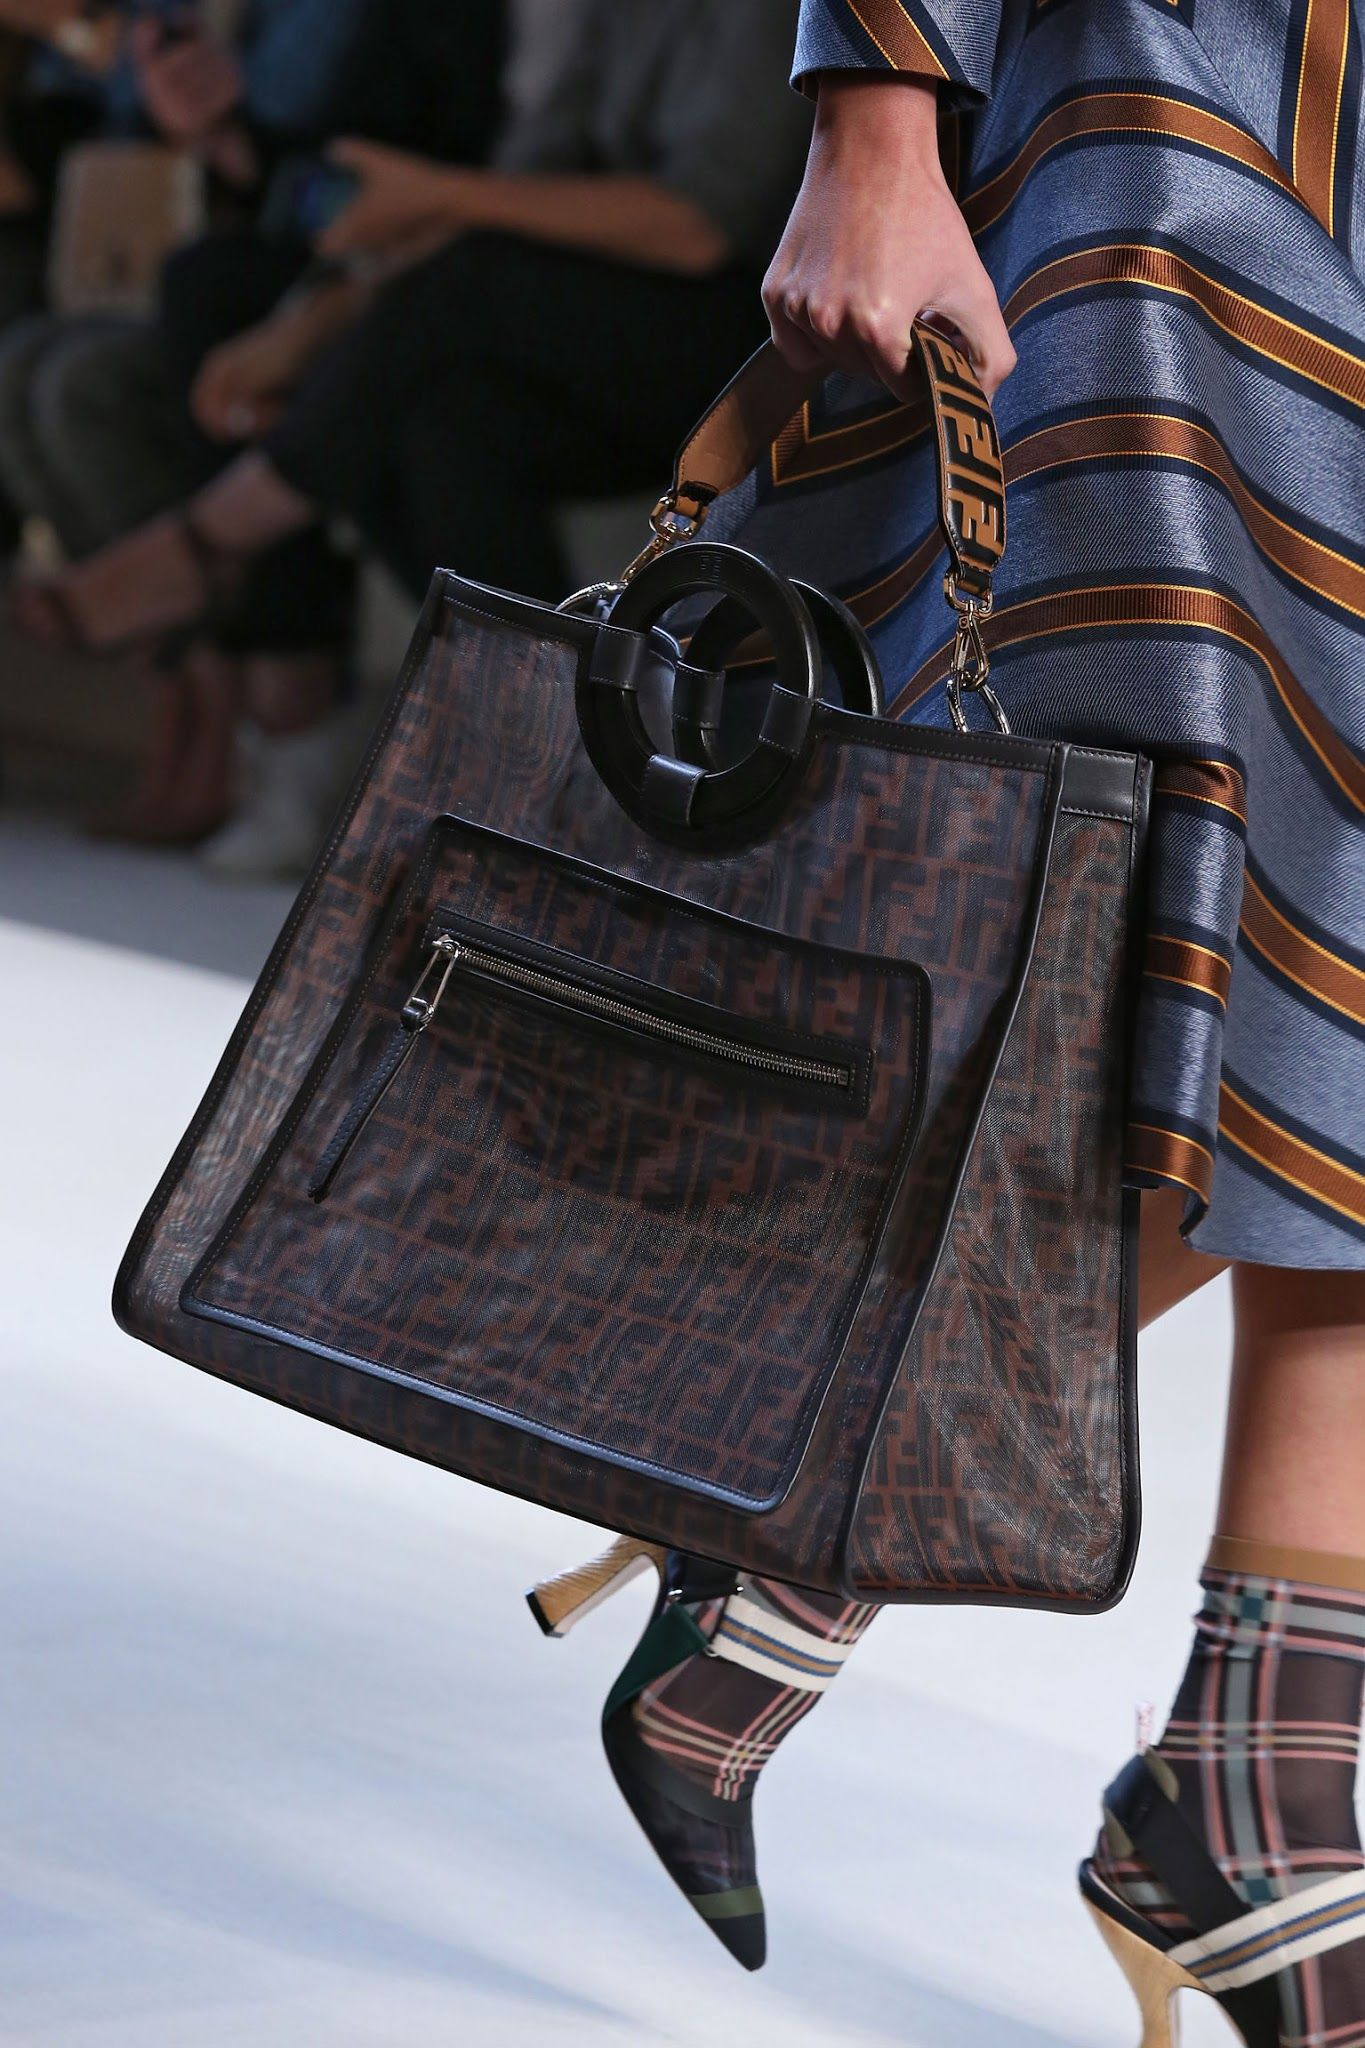 718839c435 #MFW: Fendi Spring/Summer 18 Runway & Bags Report - BagAddicts Anonymous